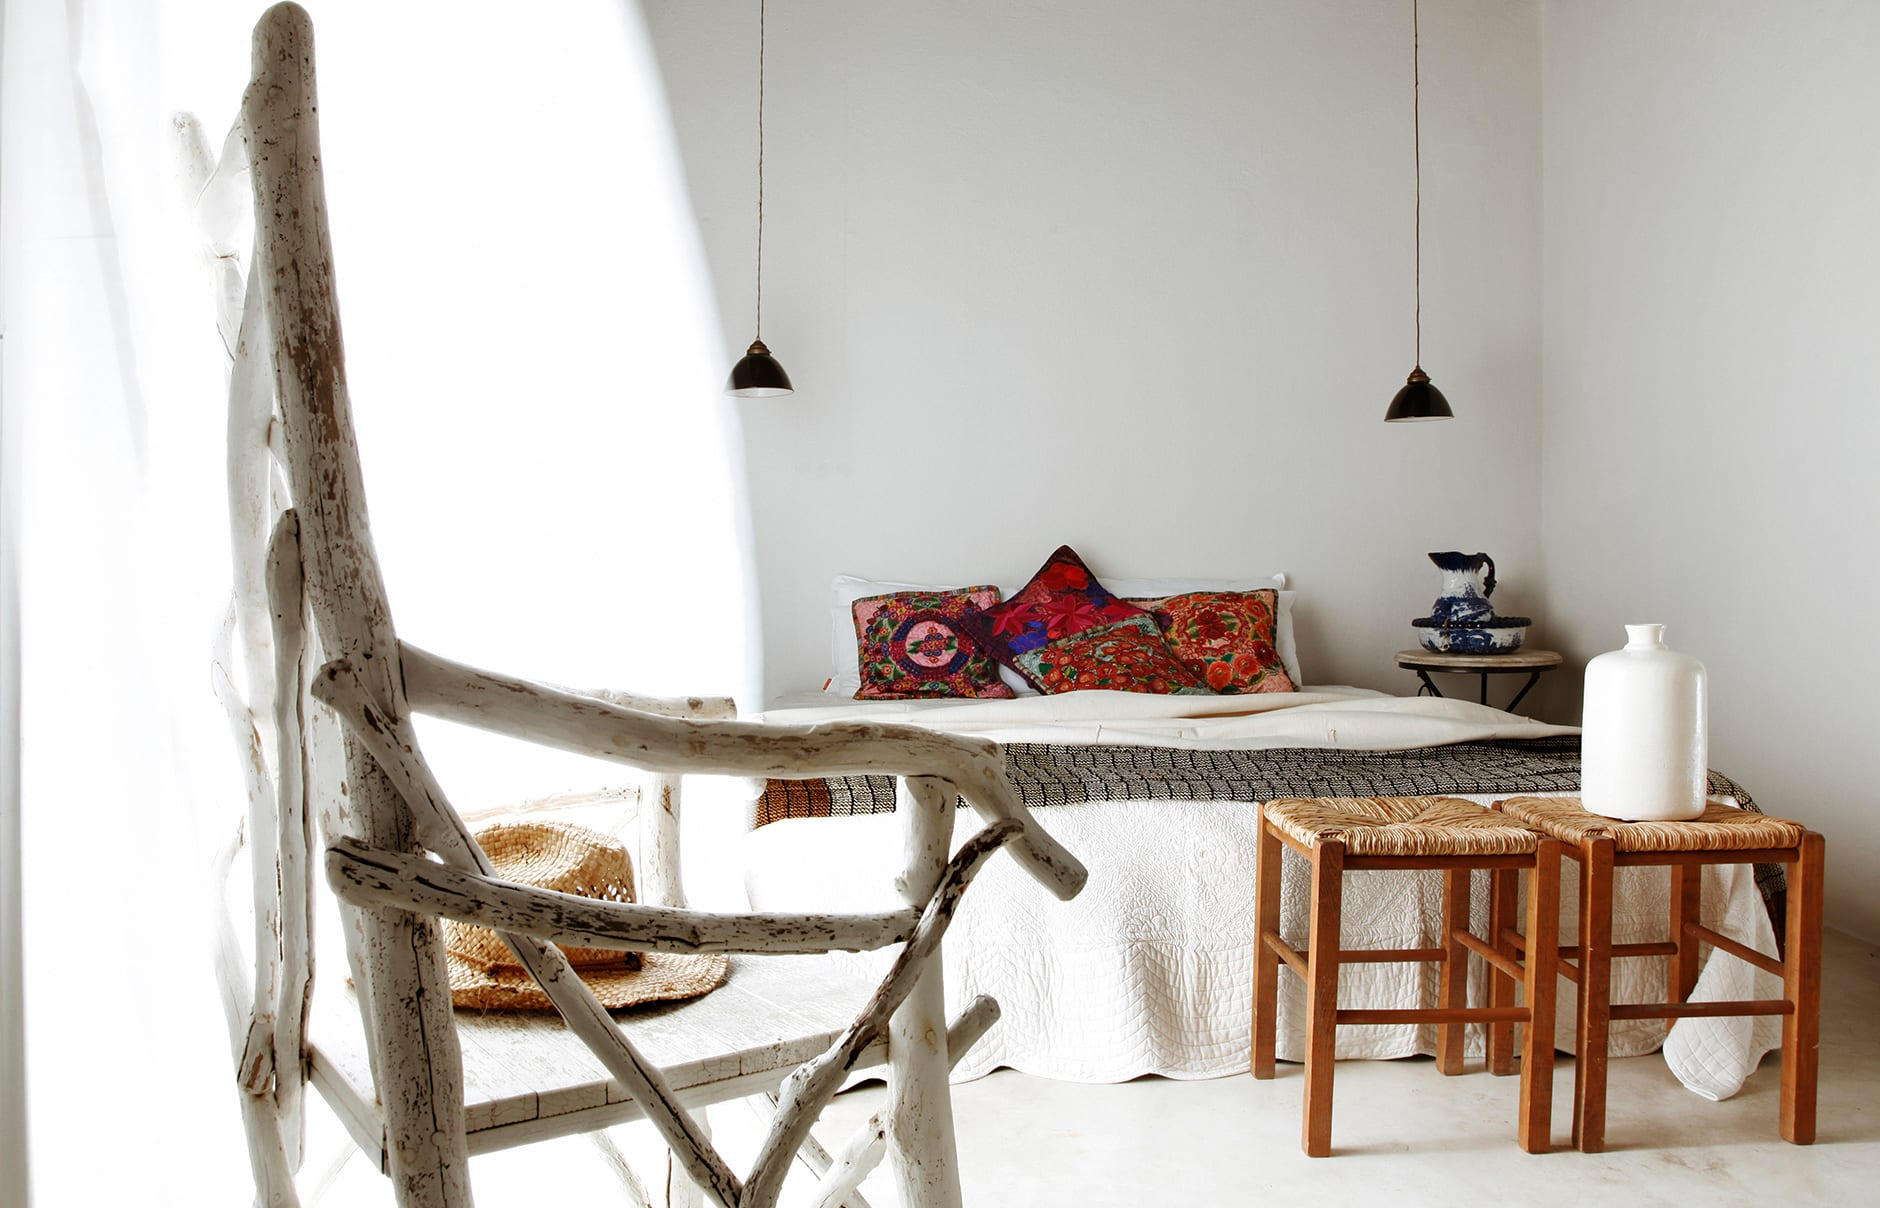 Room. San Giorgio Mykonos a Design Hotels™ Project, Greece. © SAN GIORGIO